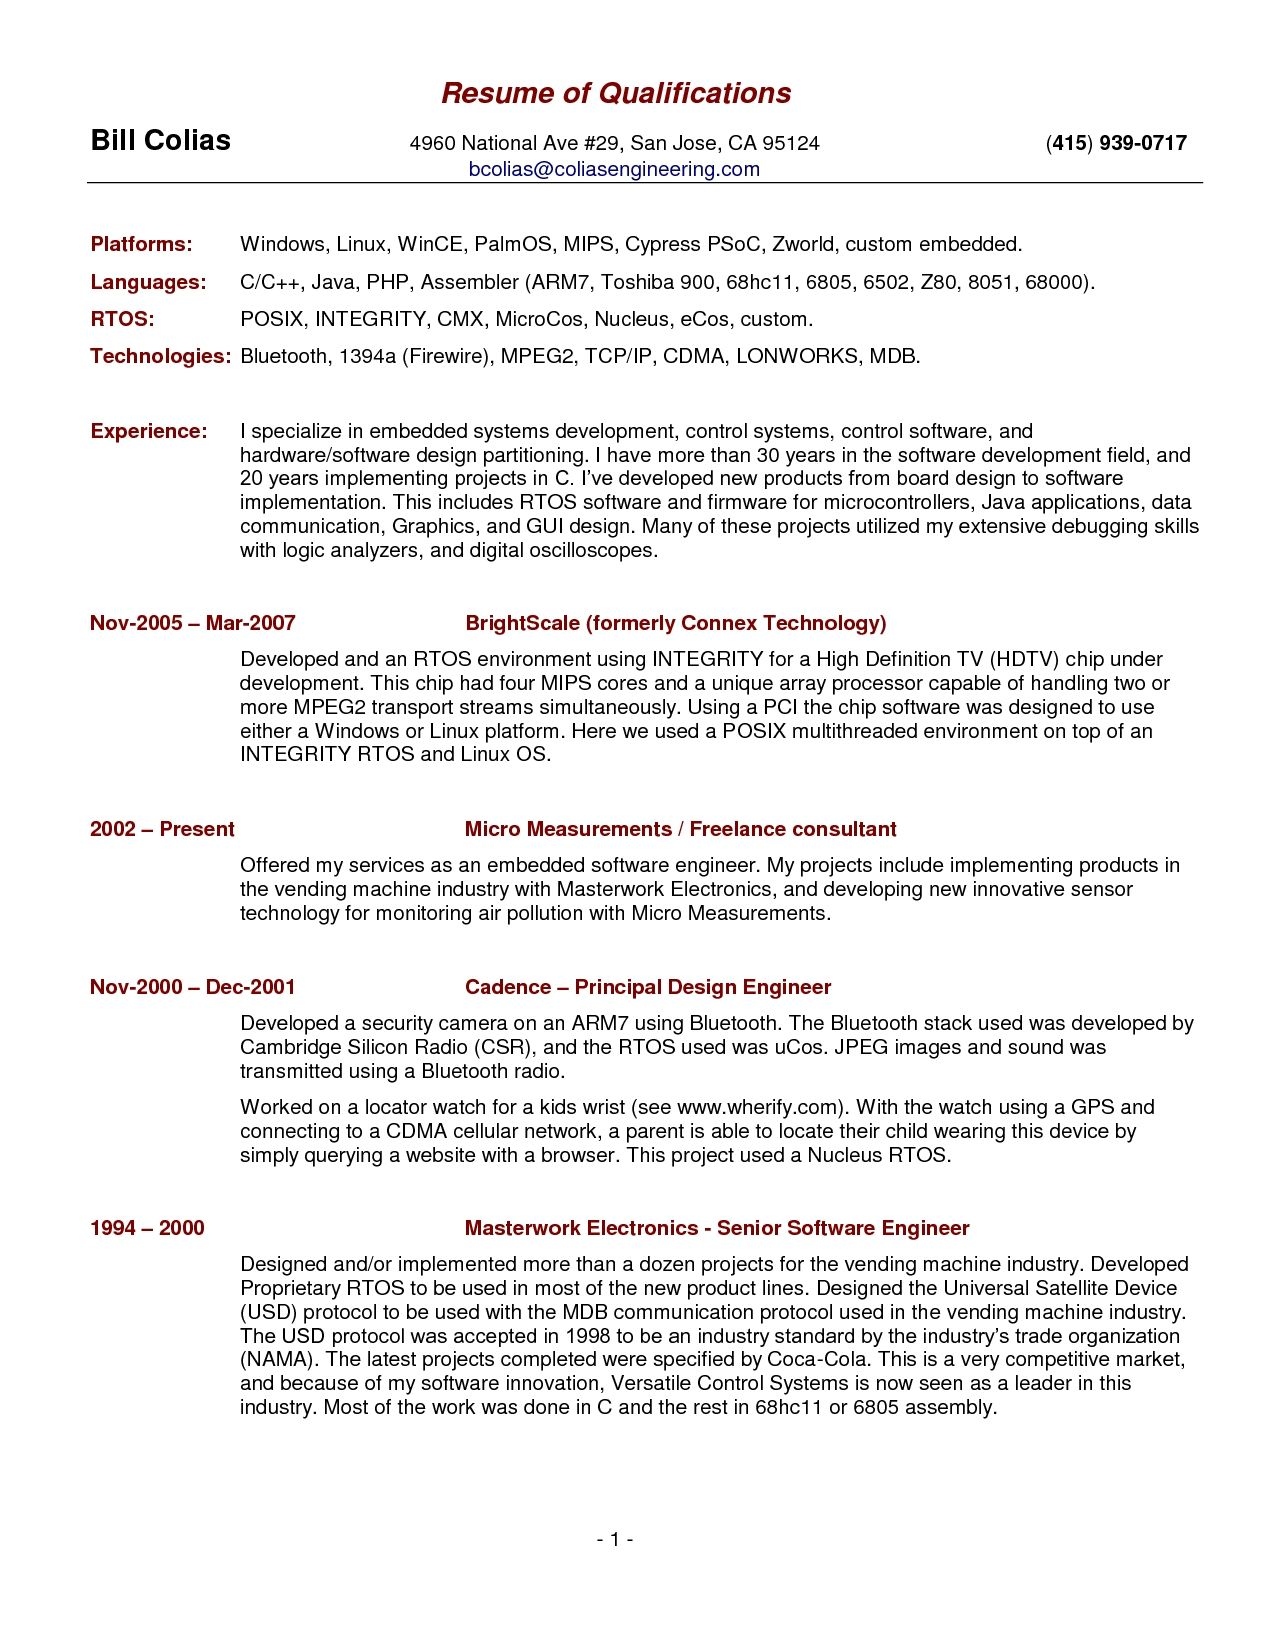 Qualifications For A Resume Examples FEaAA New Resume Skills